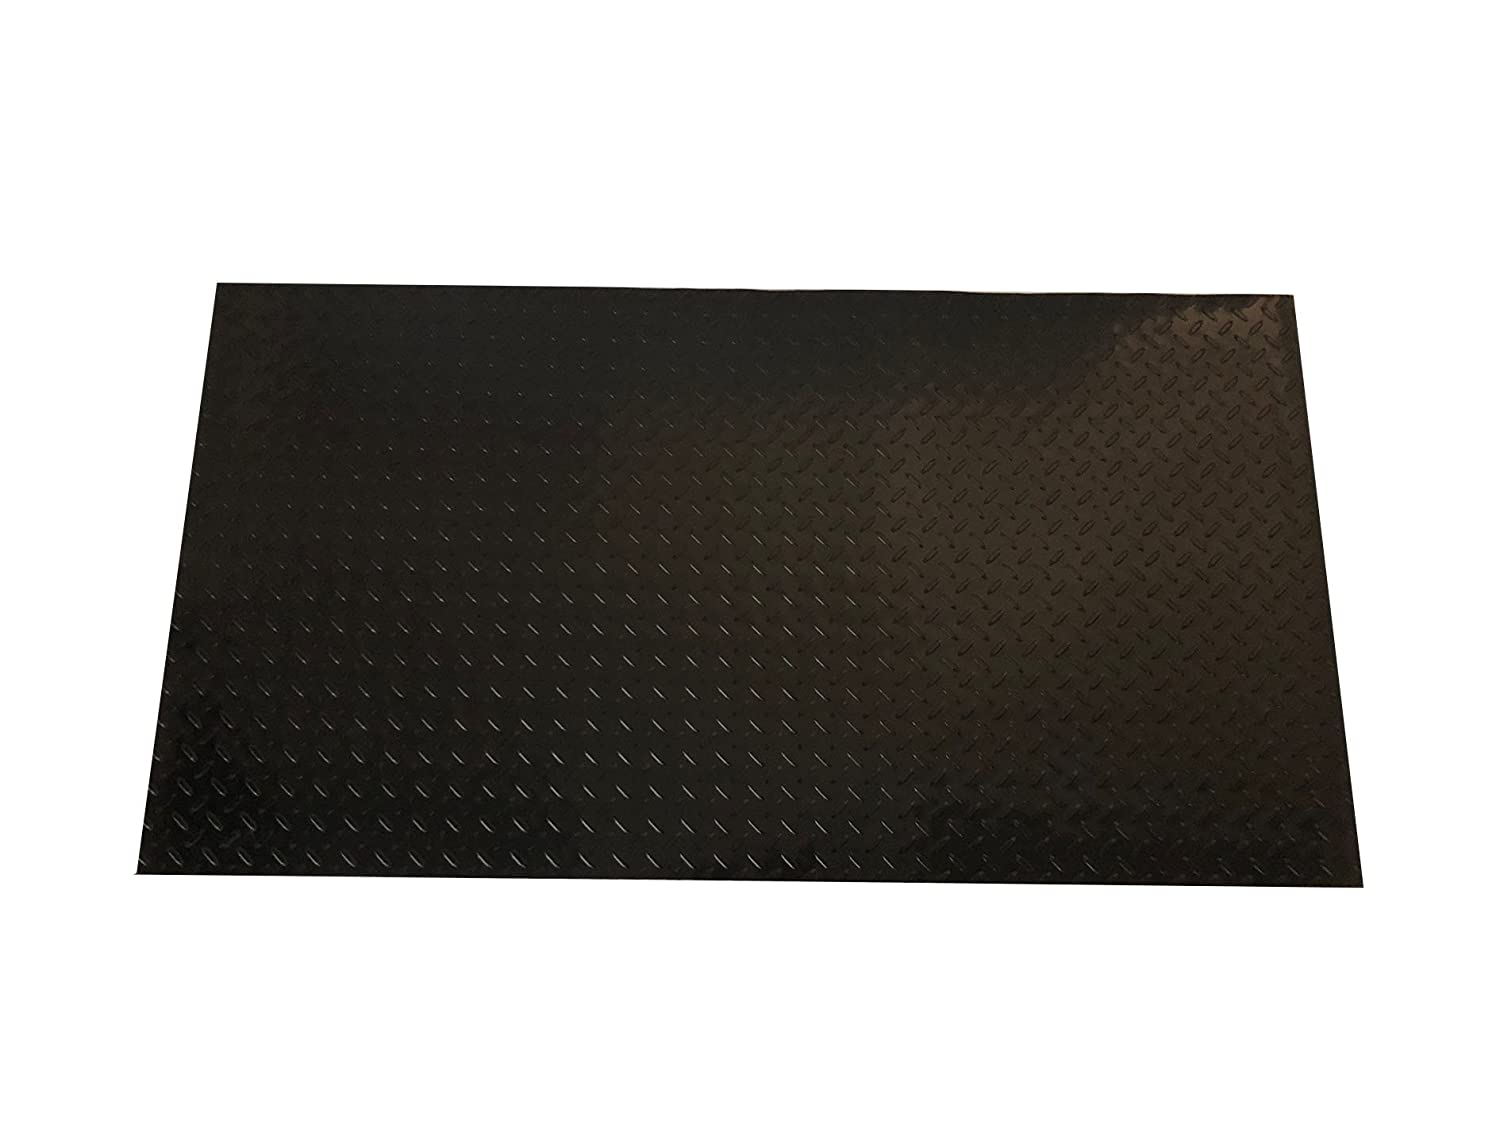 Resilia - Black Plastic Floor Runner/Protector - Embossed Diamond Plate Pattern, (27 Inches Wide x 6 Feet Long)